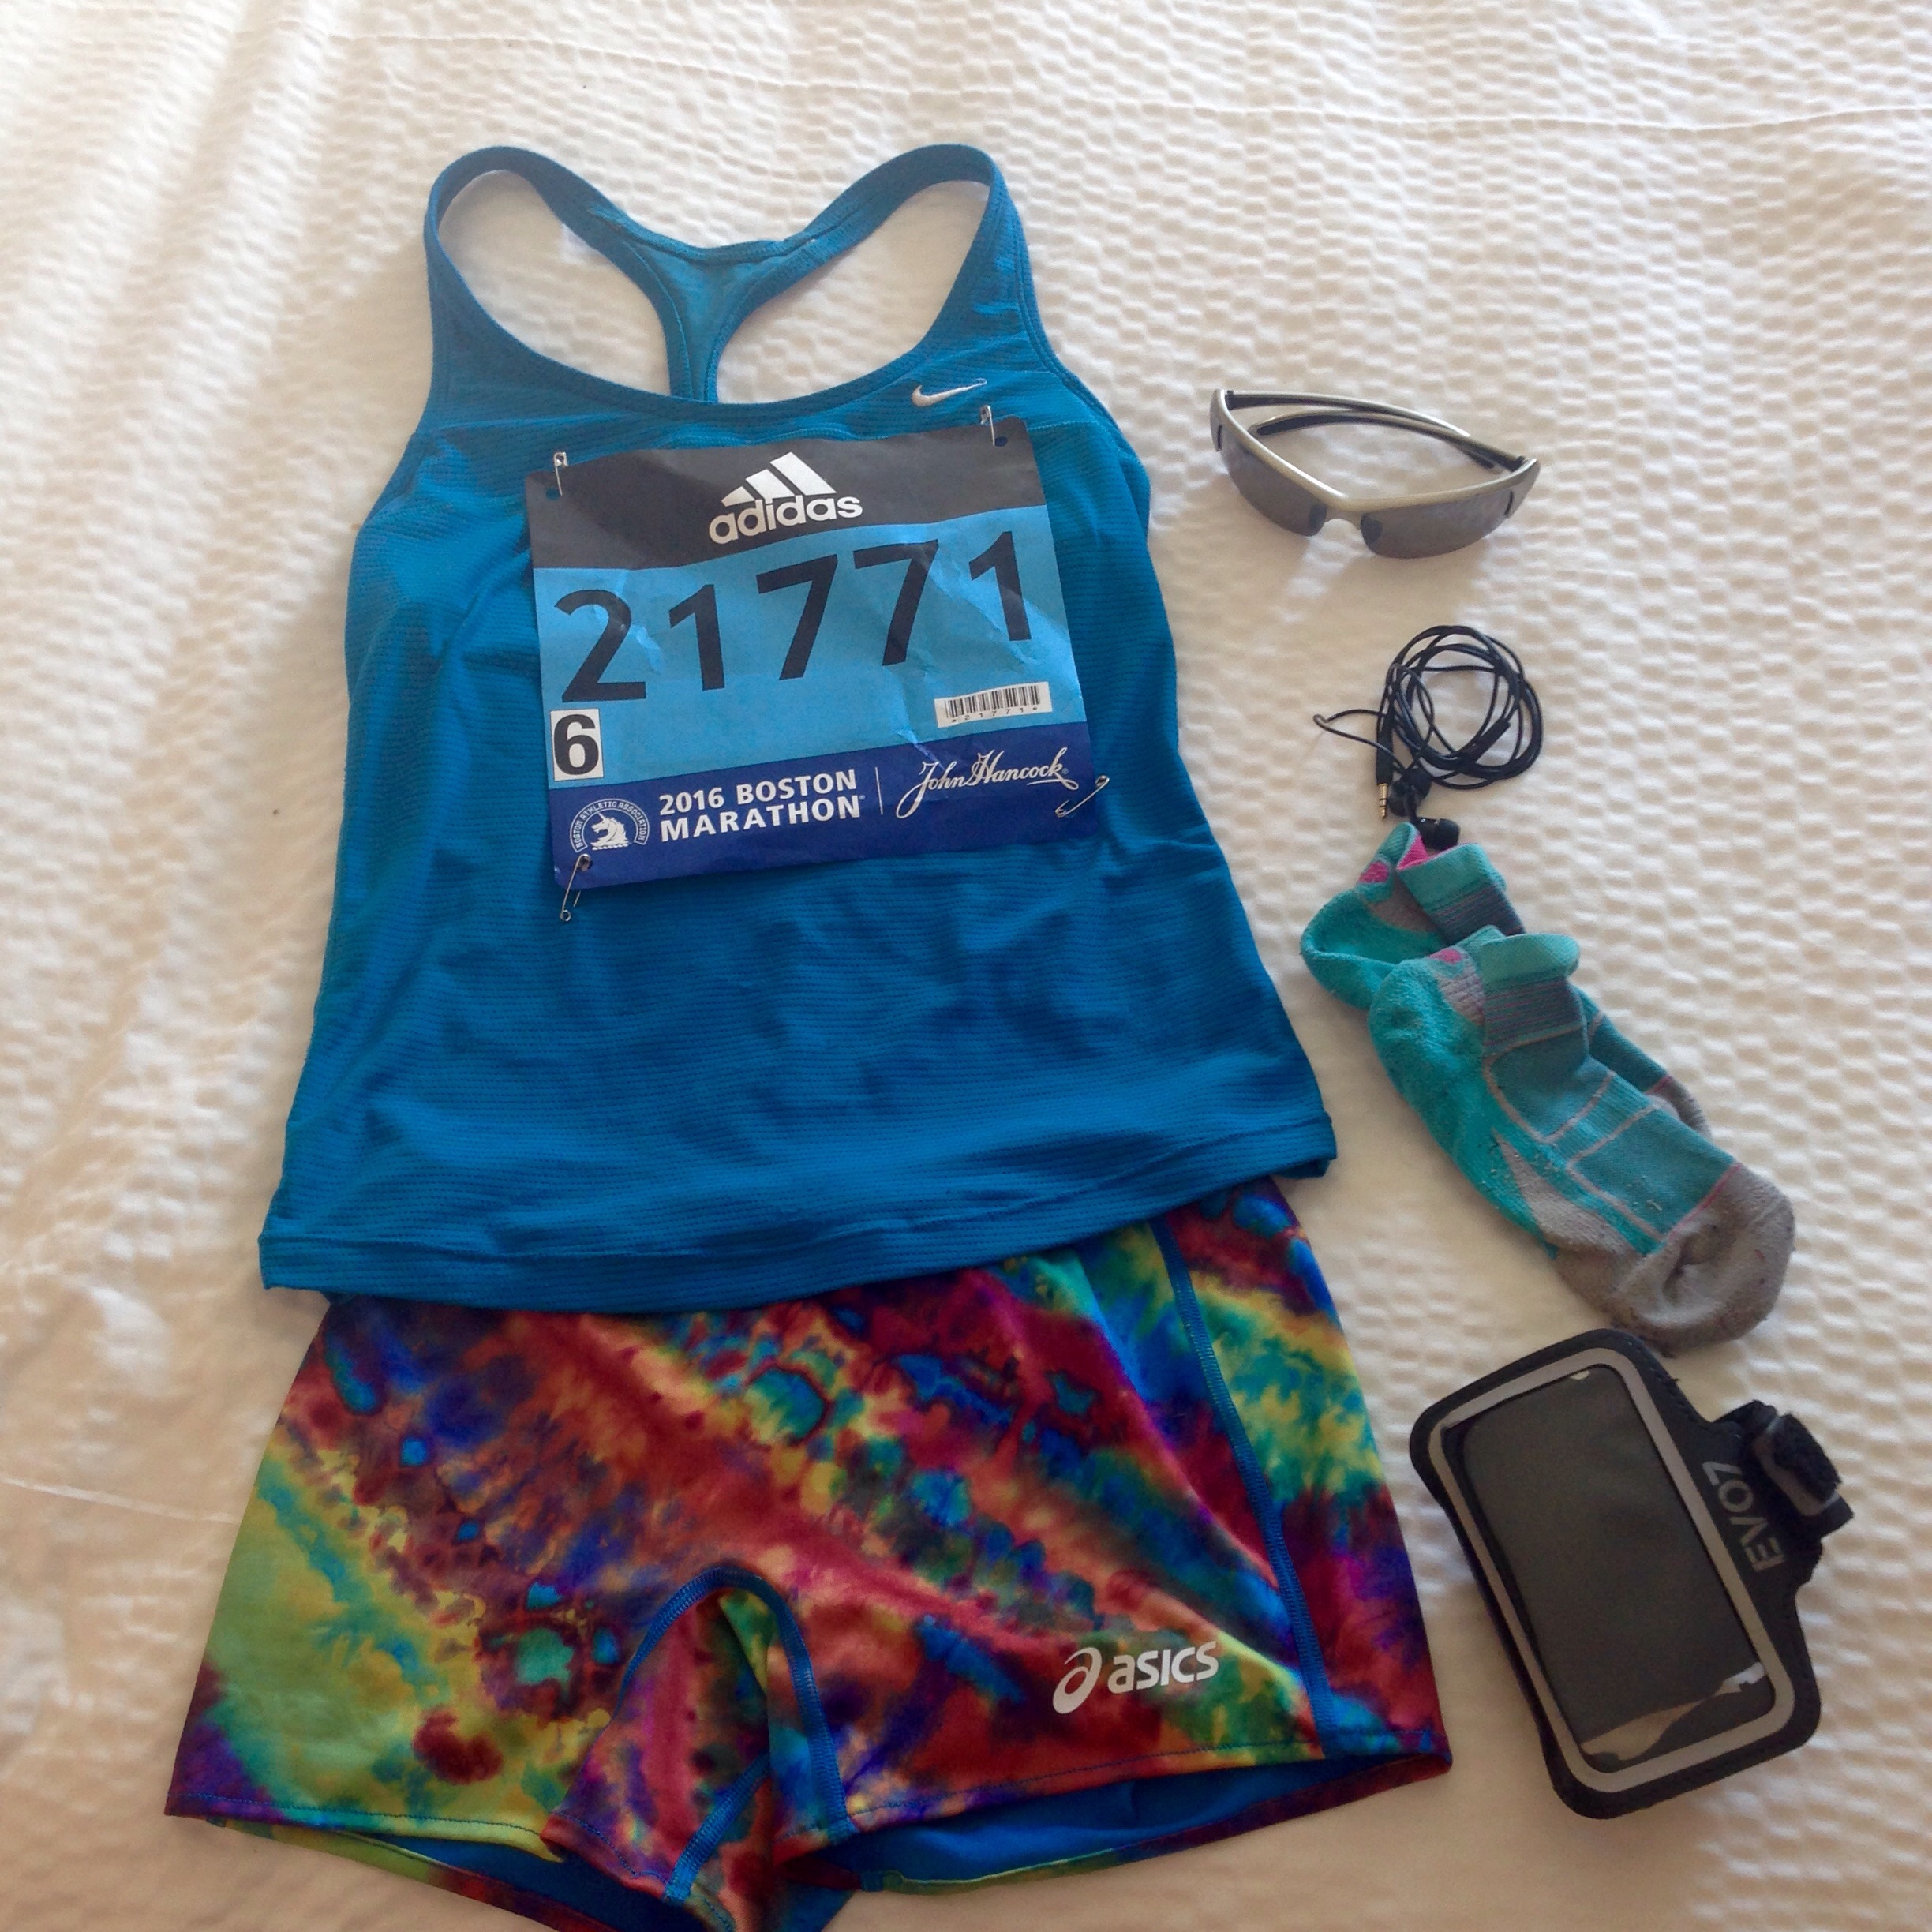 My kit. Don't laugh at my tie-die shorts; they kept me cool. Old Nike singlet, ASICS boy shorts, and my favorite Feetures socks. Shoes (not pictured):Brooks Launch 2,